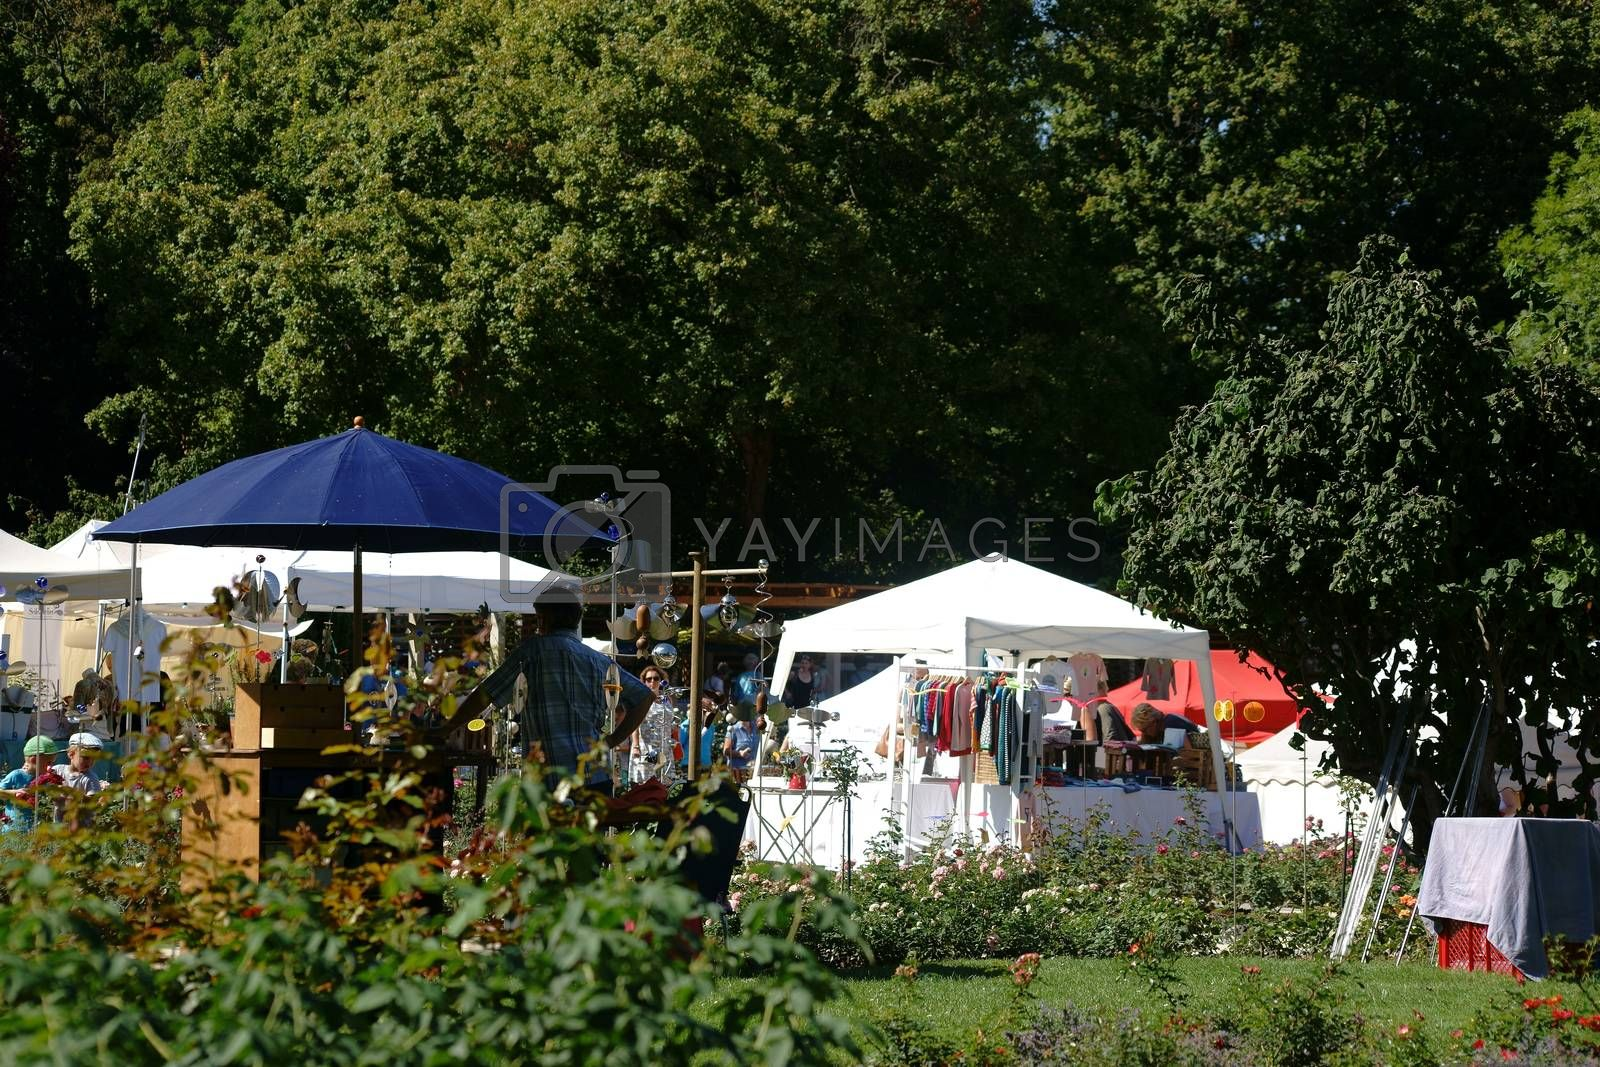 Mainz, Germany - August 29, 2015: Small stalls and tents of the artist market surrounded by trees and flowerbeds on the Mainz Wine Market in the city park and rose garden on August 29, 2015 Mainz.